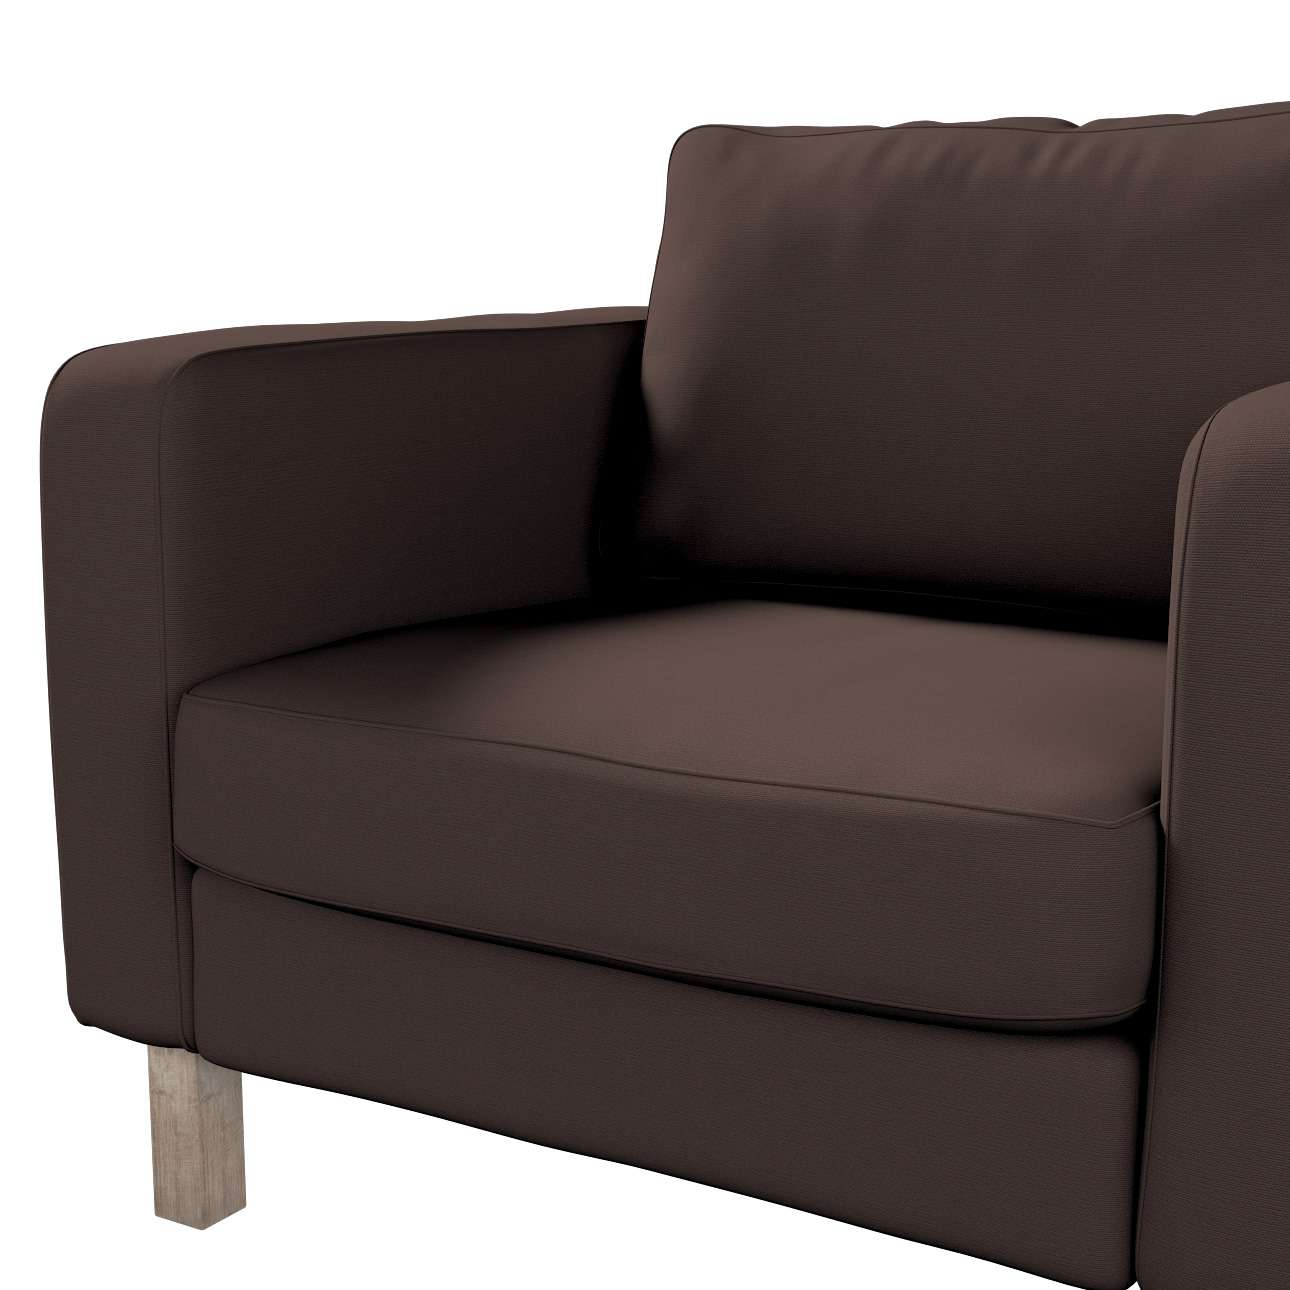 Karlstad armchair cover in collection Panama Cotton, fabric: 702-03